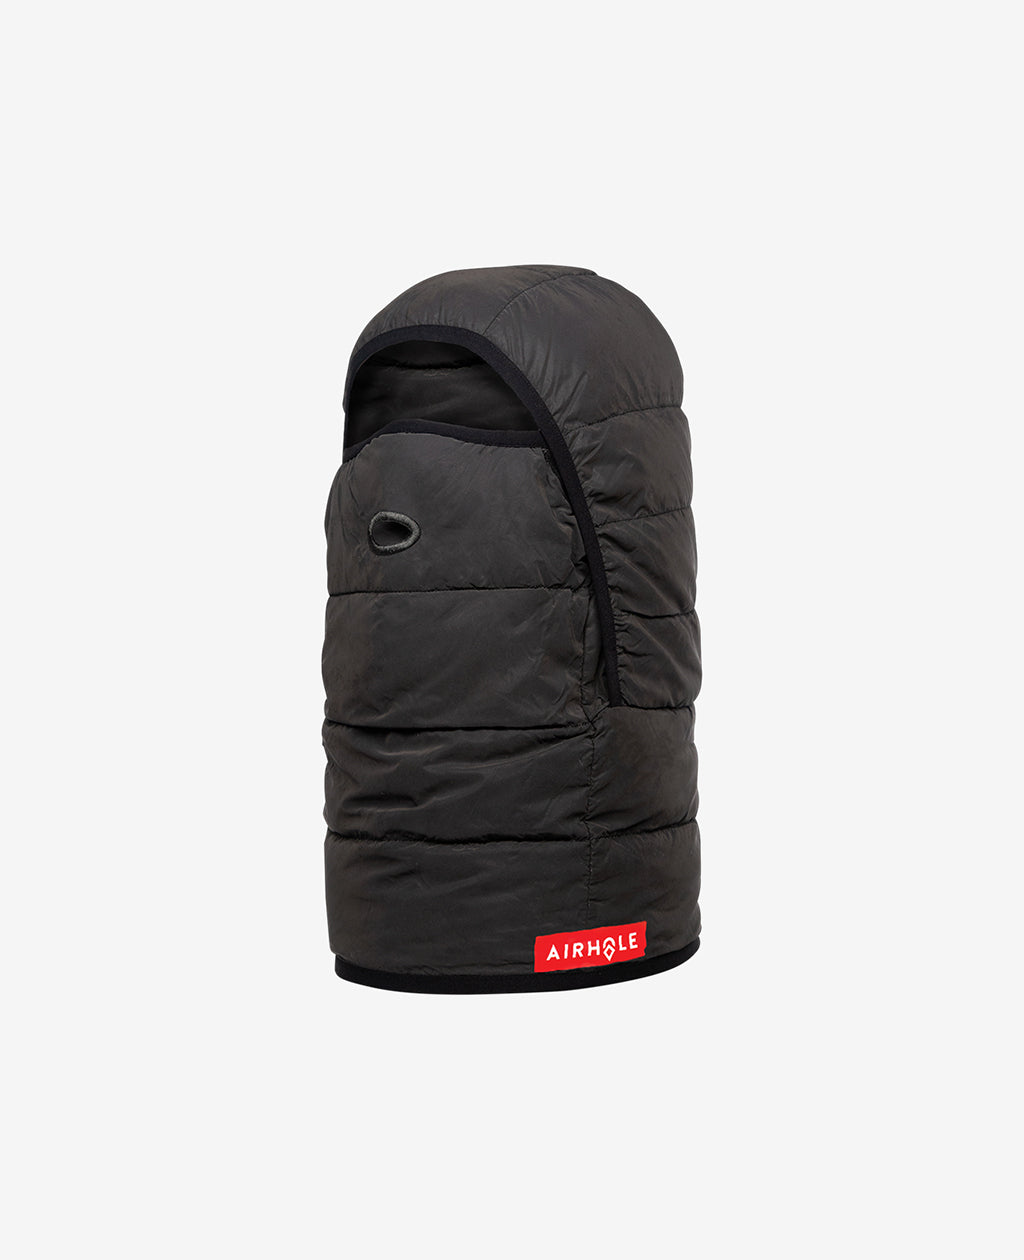 Airhole Airhood Packable